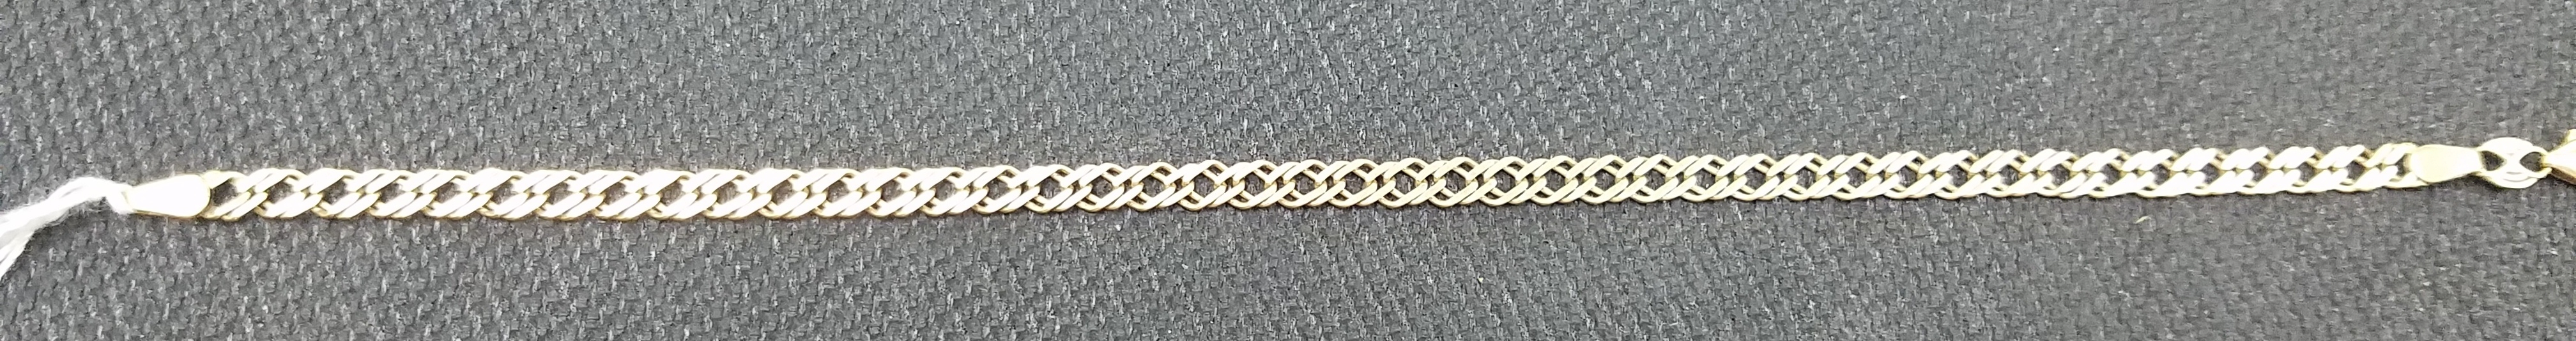 14KT GOLD 2.50DWT DOUBLE CURB YELLOW GOLD BRACELET